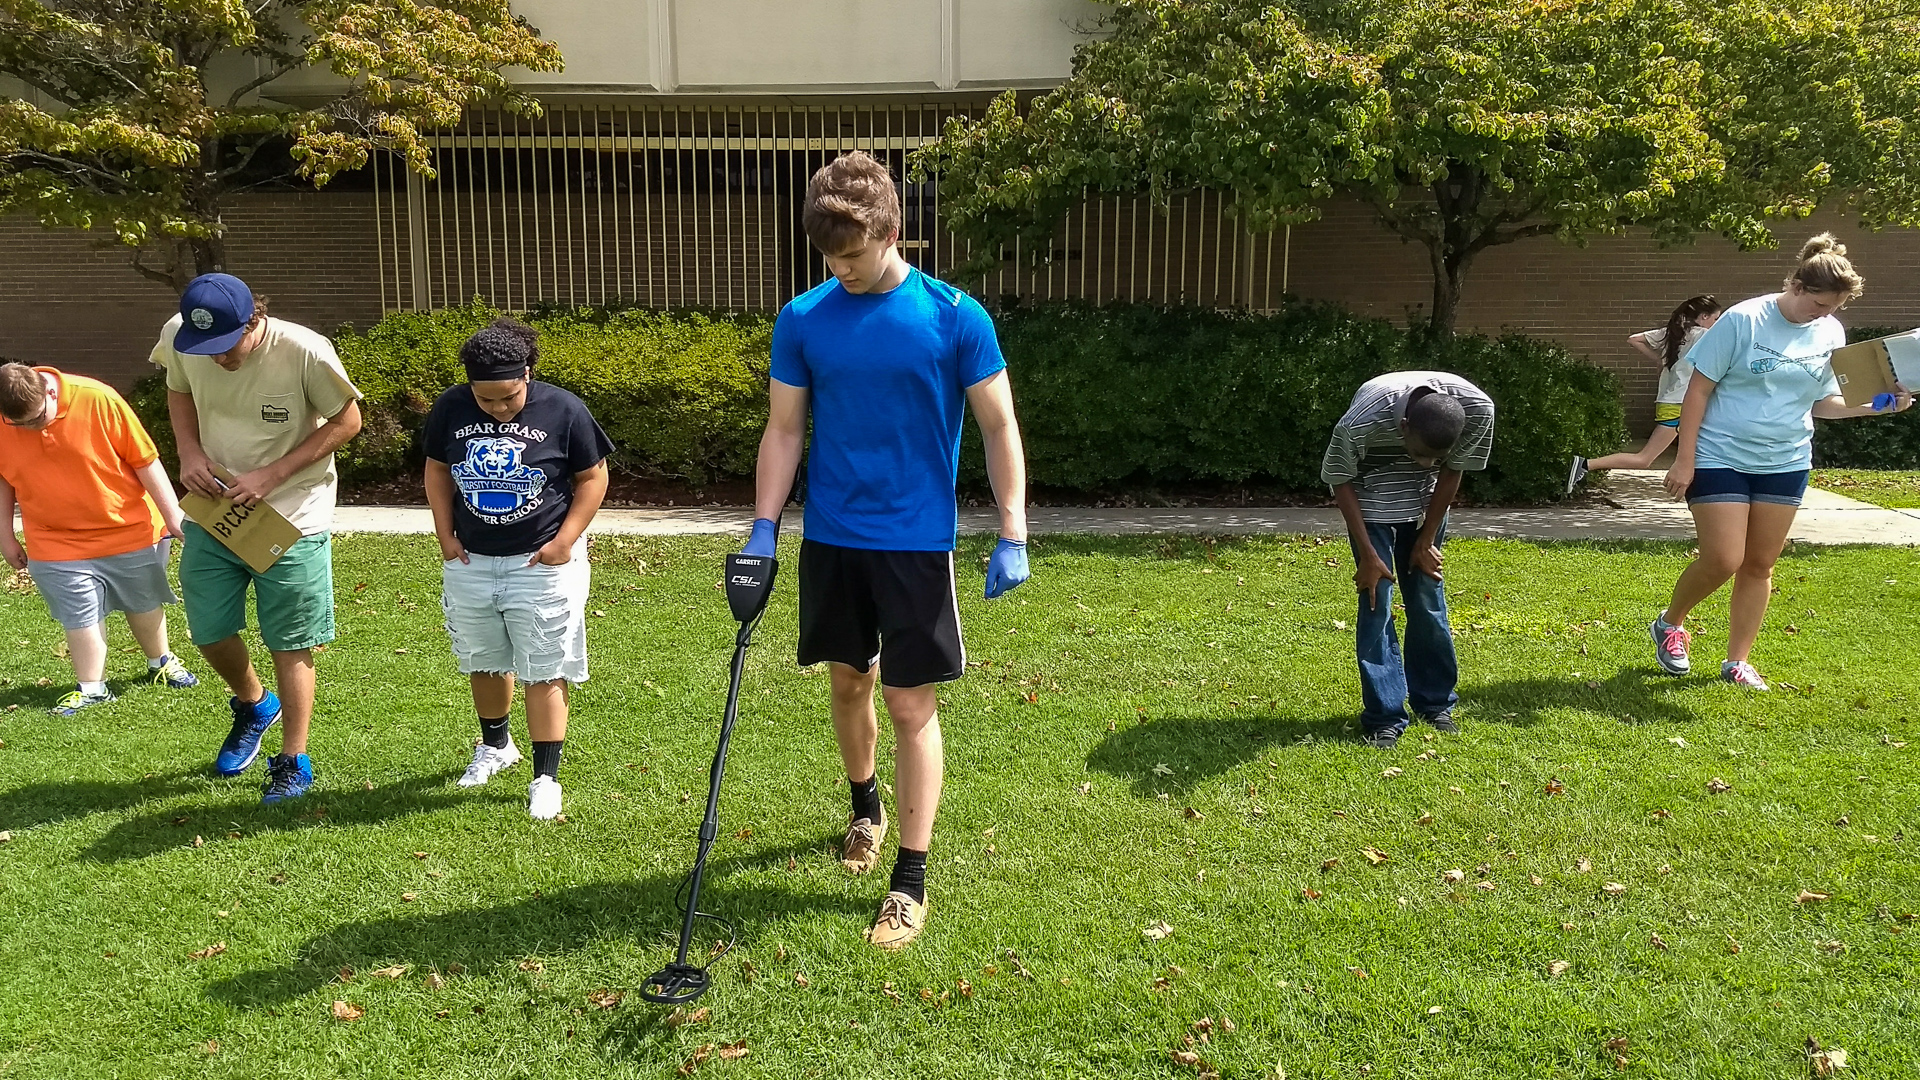 A student uses a metal detector while other students look at the grass.